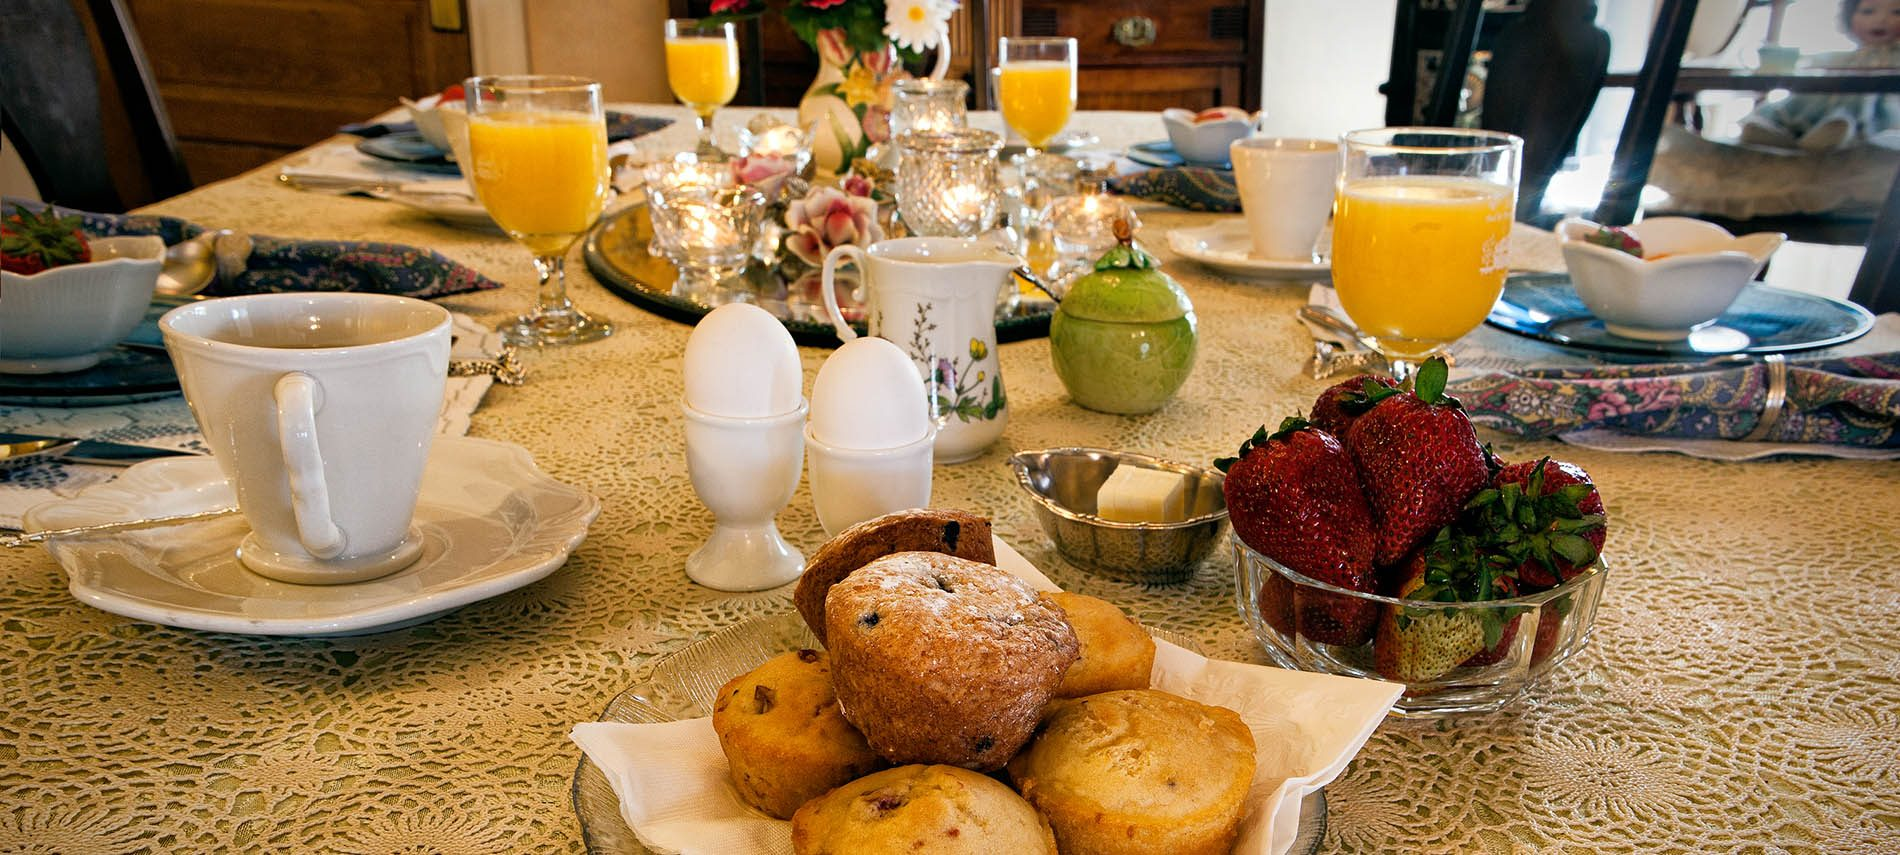 Picture of breakfast table